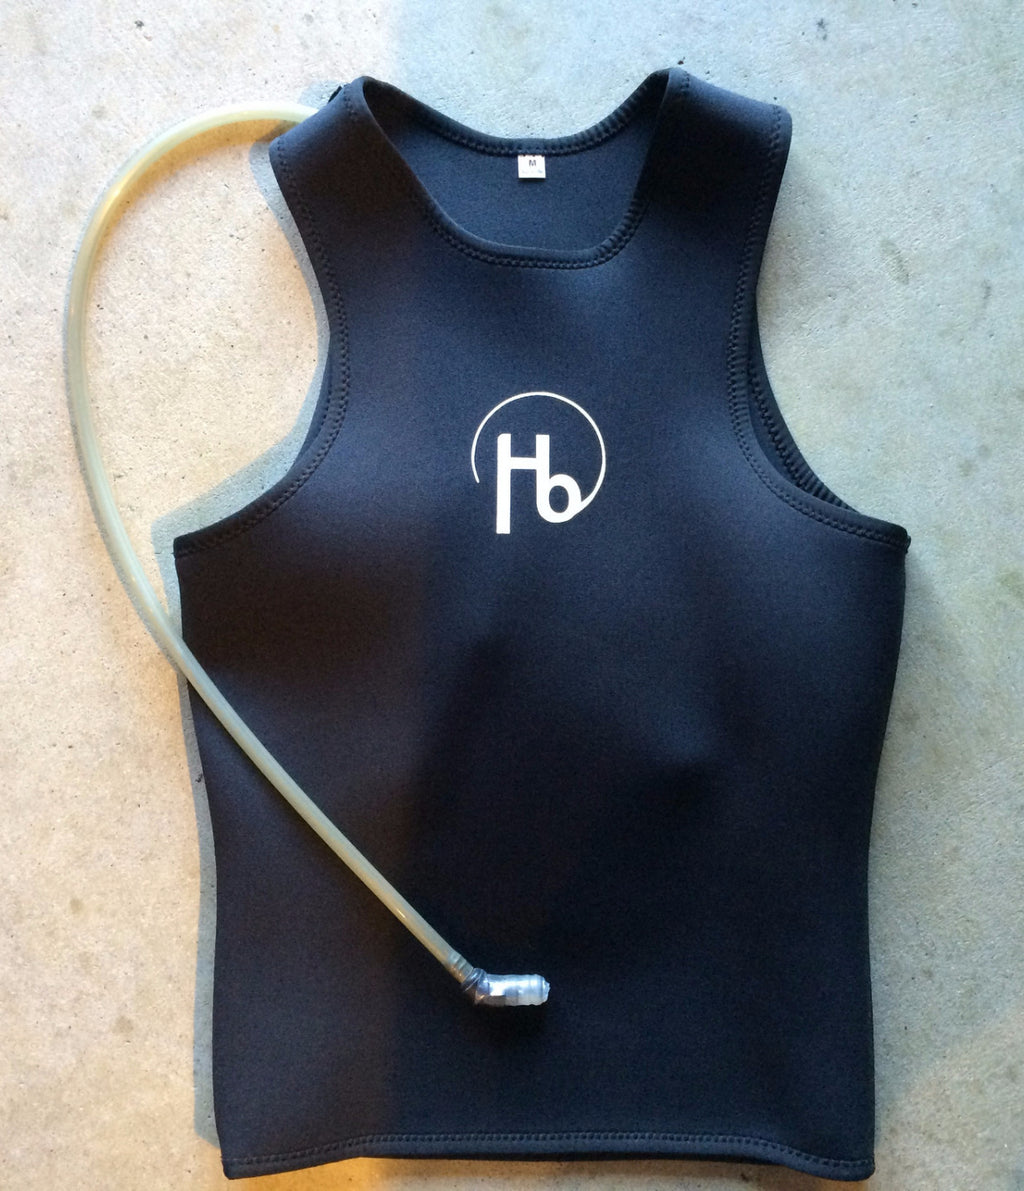 Humpback hydration SUP vest